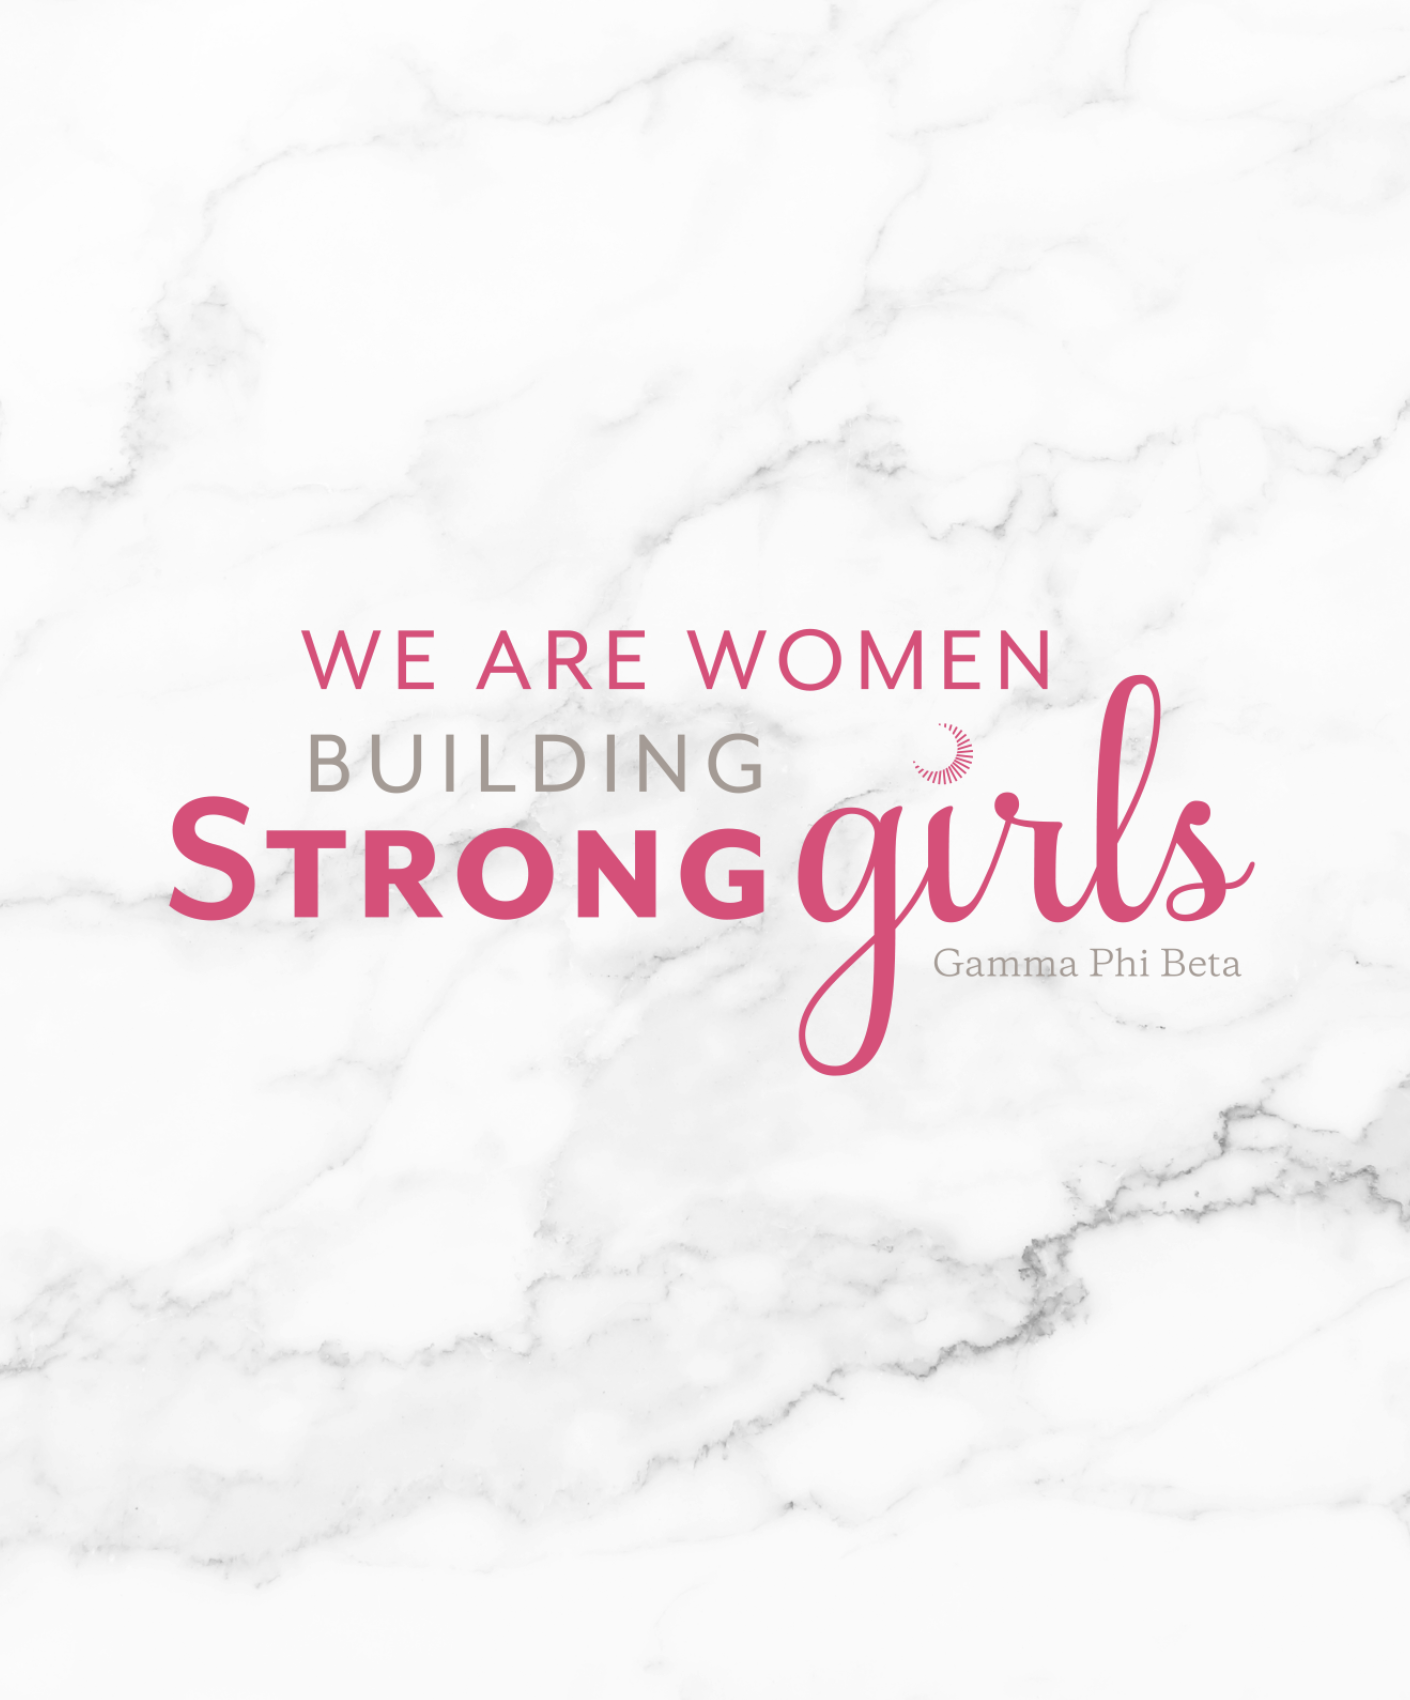 We are women building strong girls. -